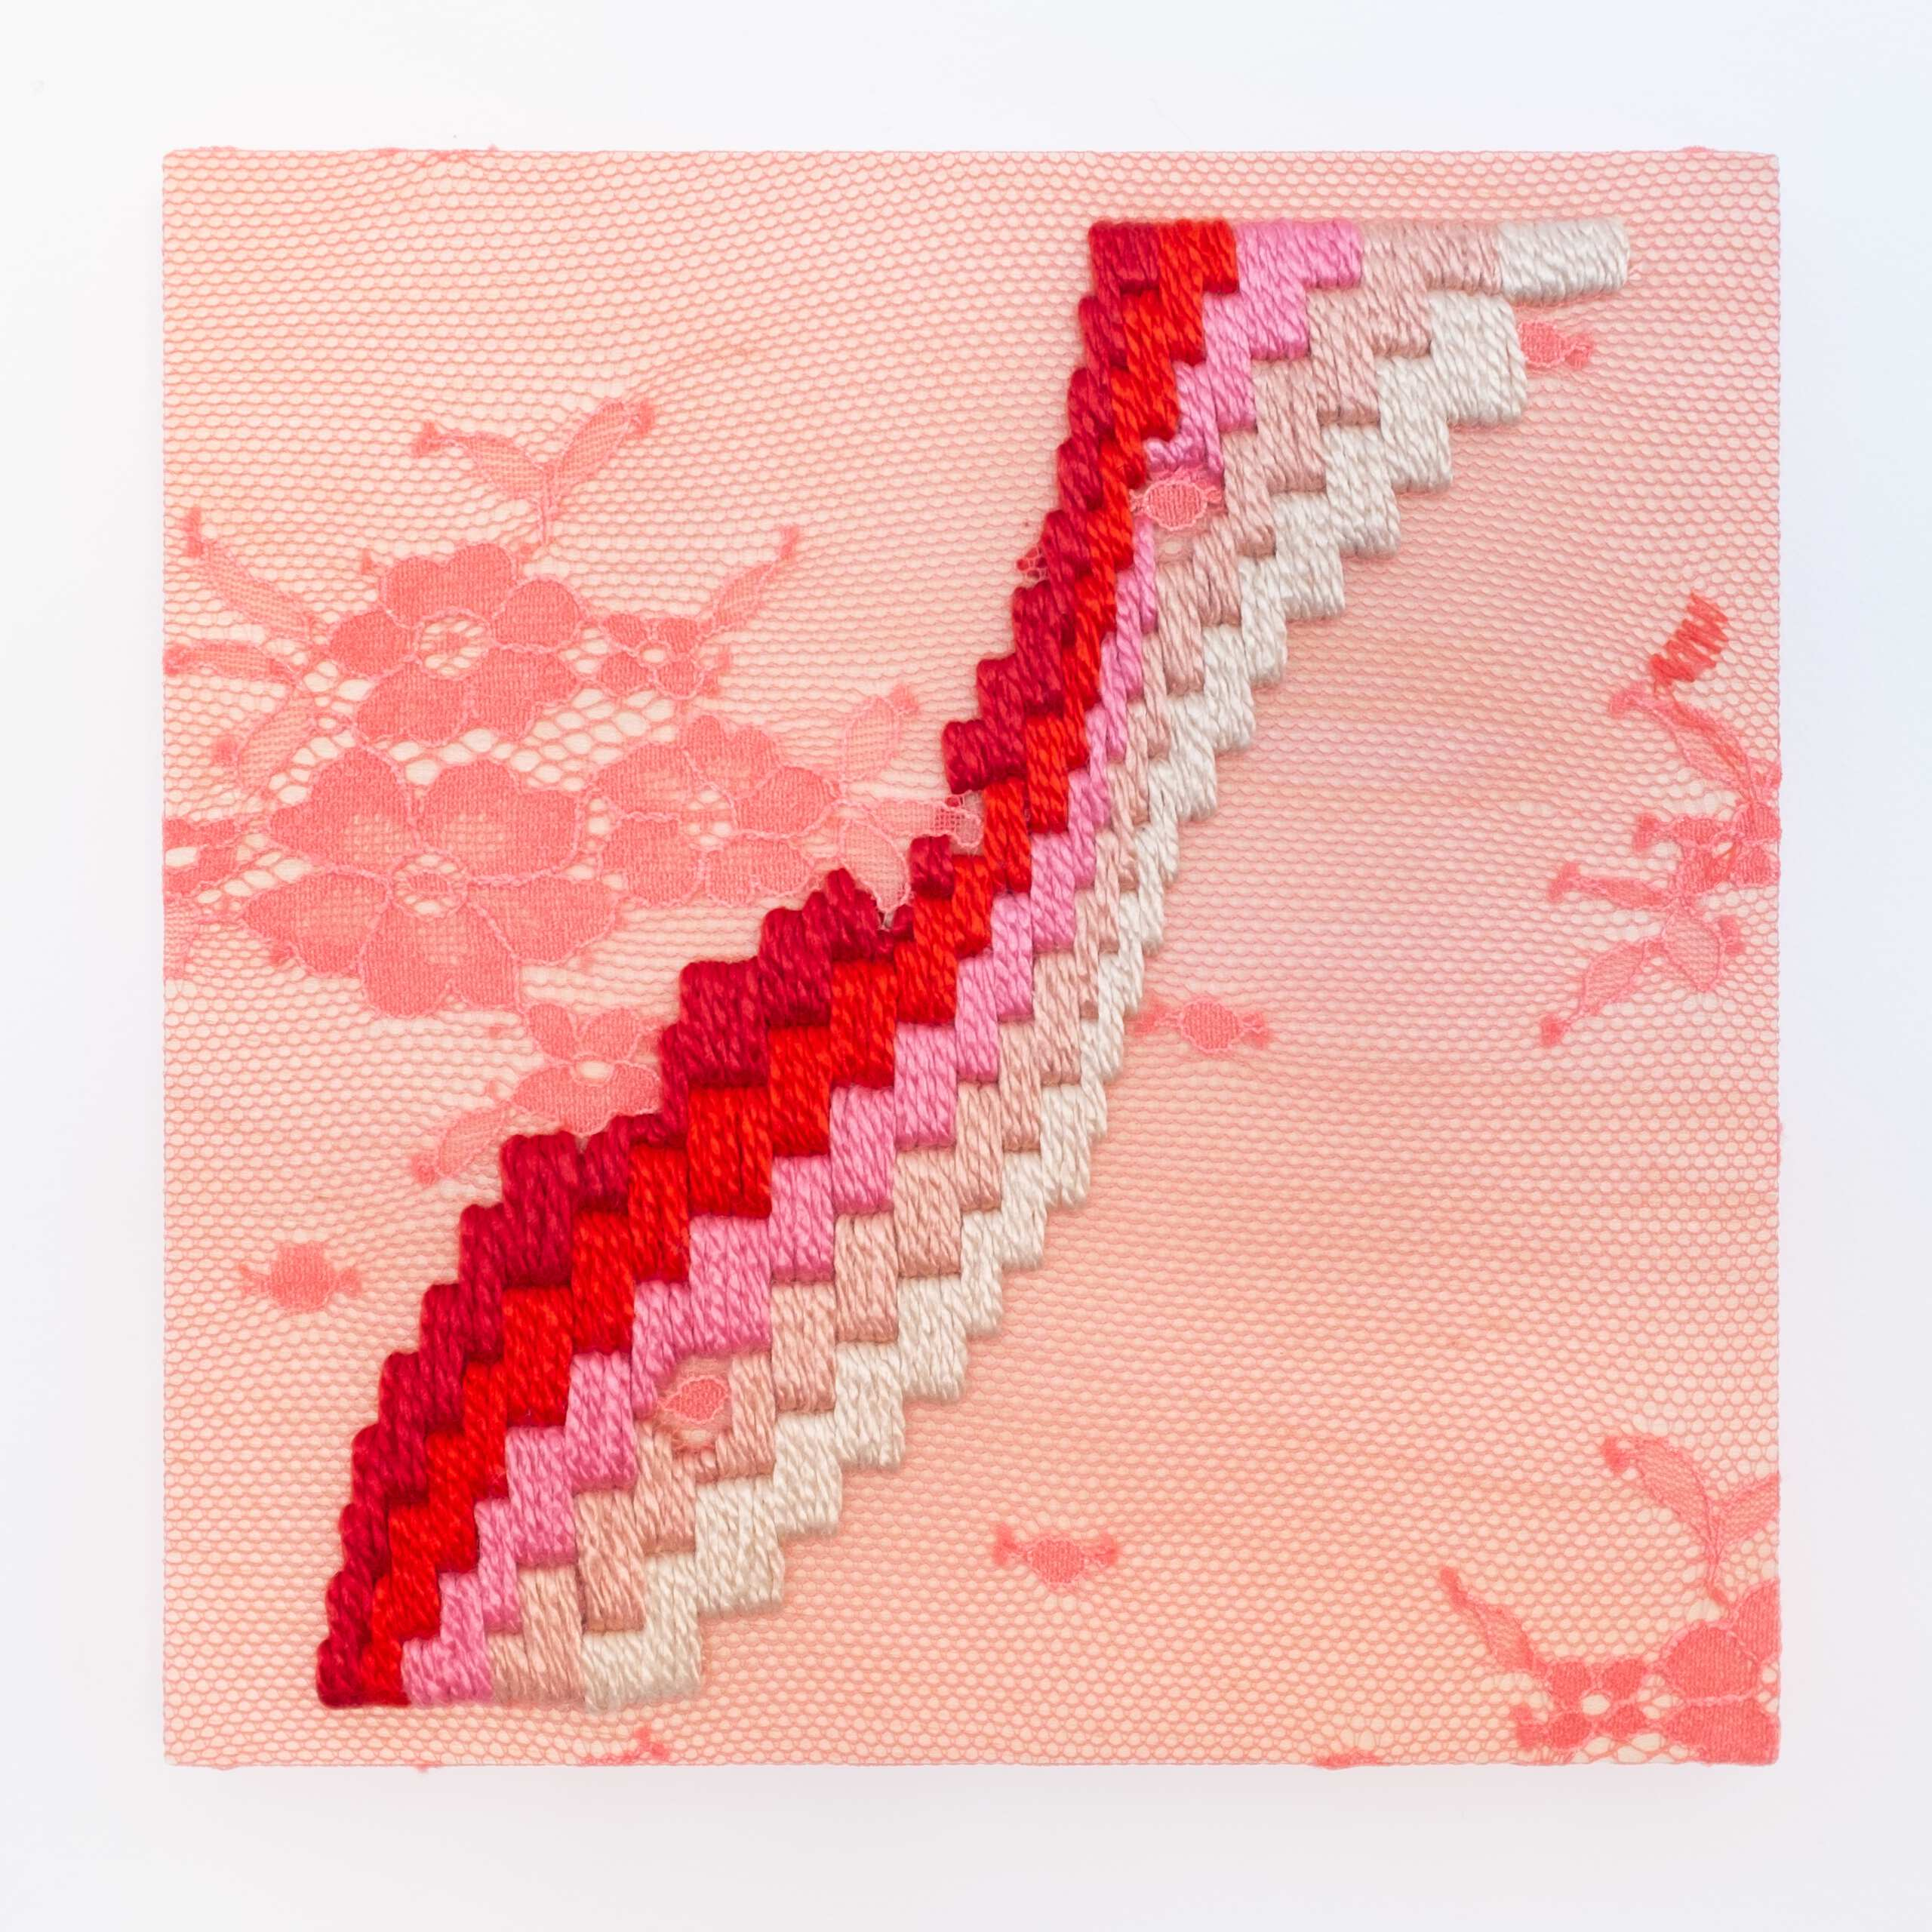 Get a Wiggle on [red], Hand-embroidered silk on lace over plywood panel, 2020